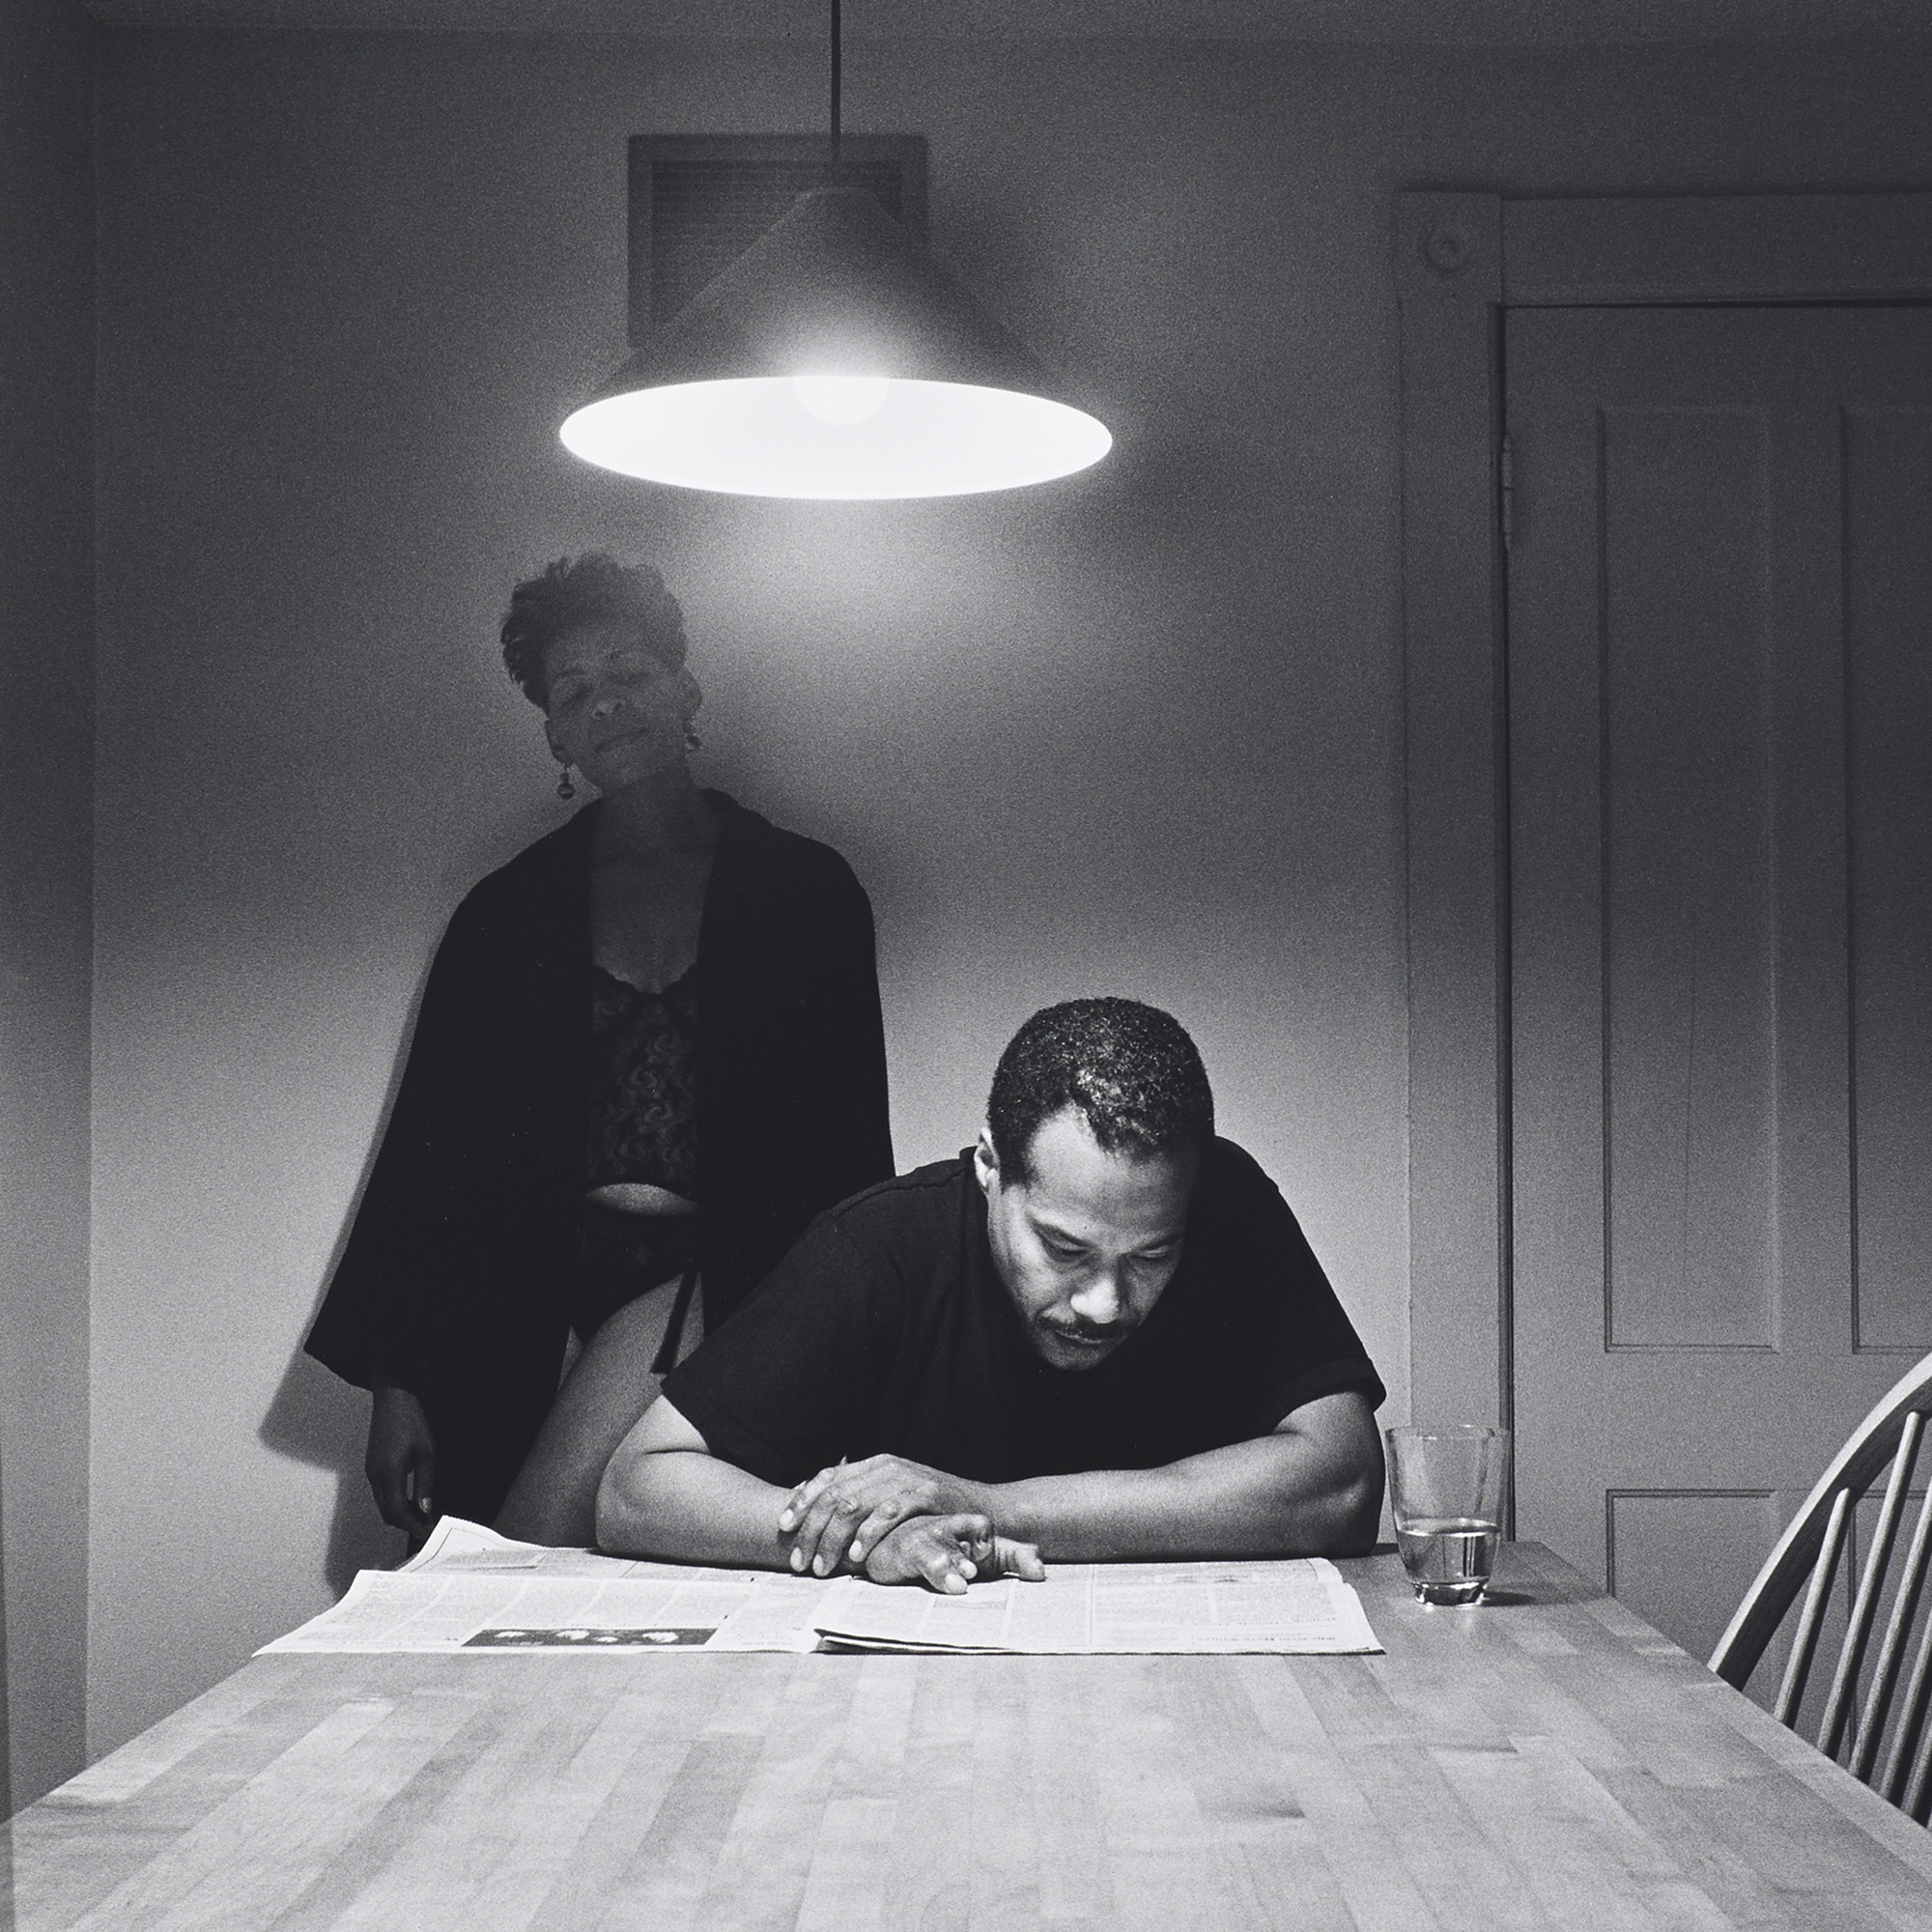 Kitchen Table Series: 218: CARRIE MAE WEEMS, Untitled (from The Kitchen Table